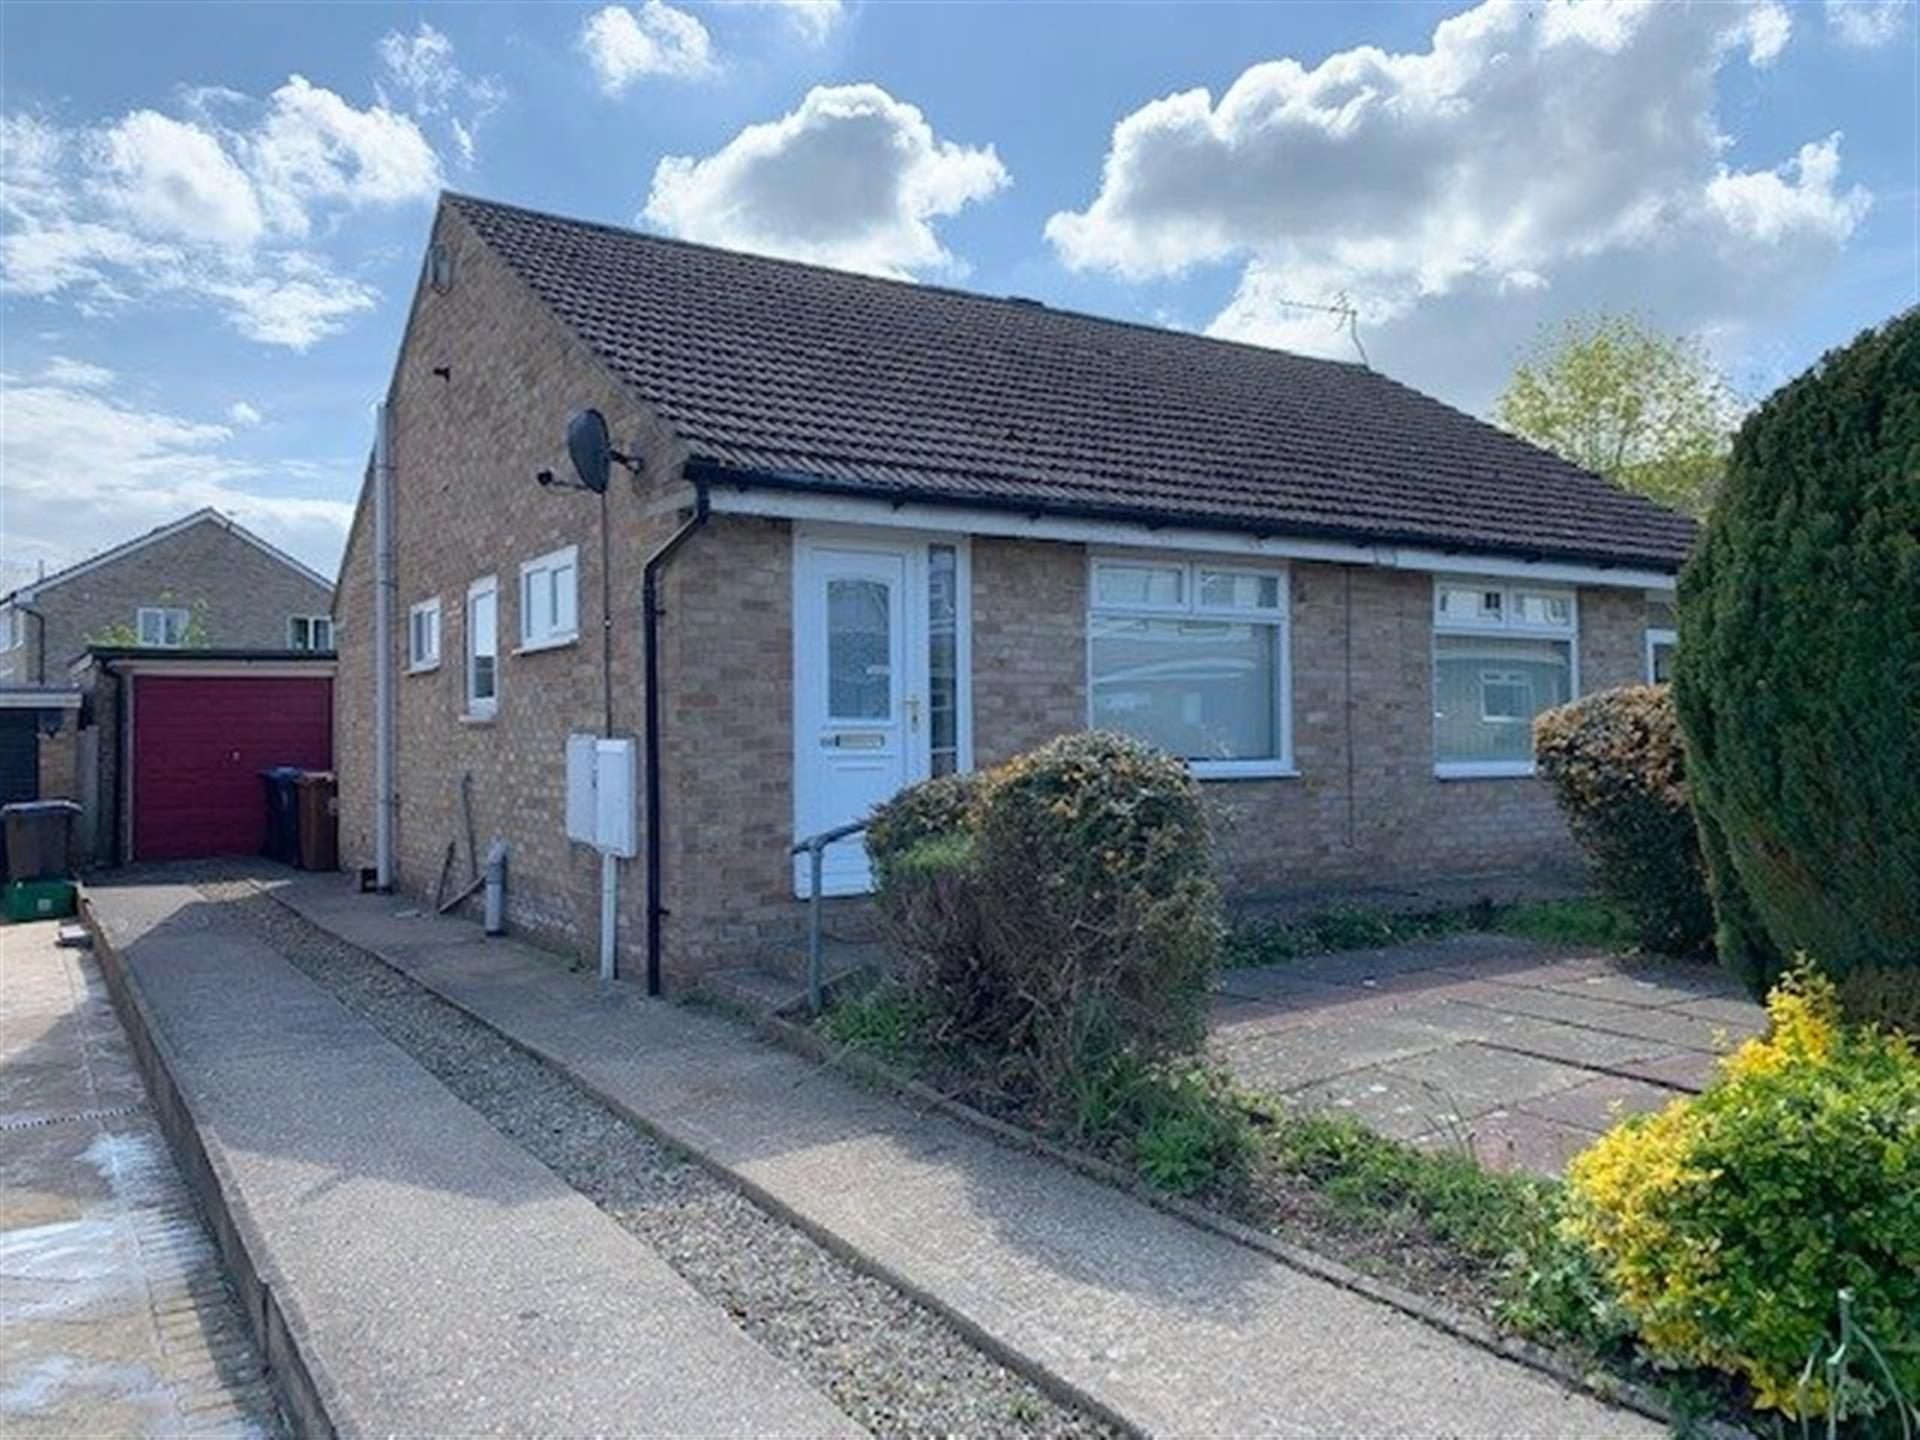 2 bedroom semi-detached house To Let in Etherley Dene - Main Image.